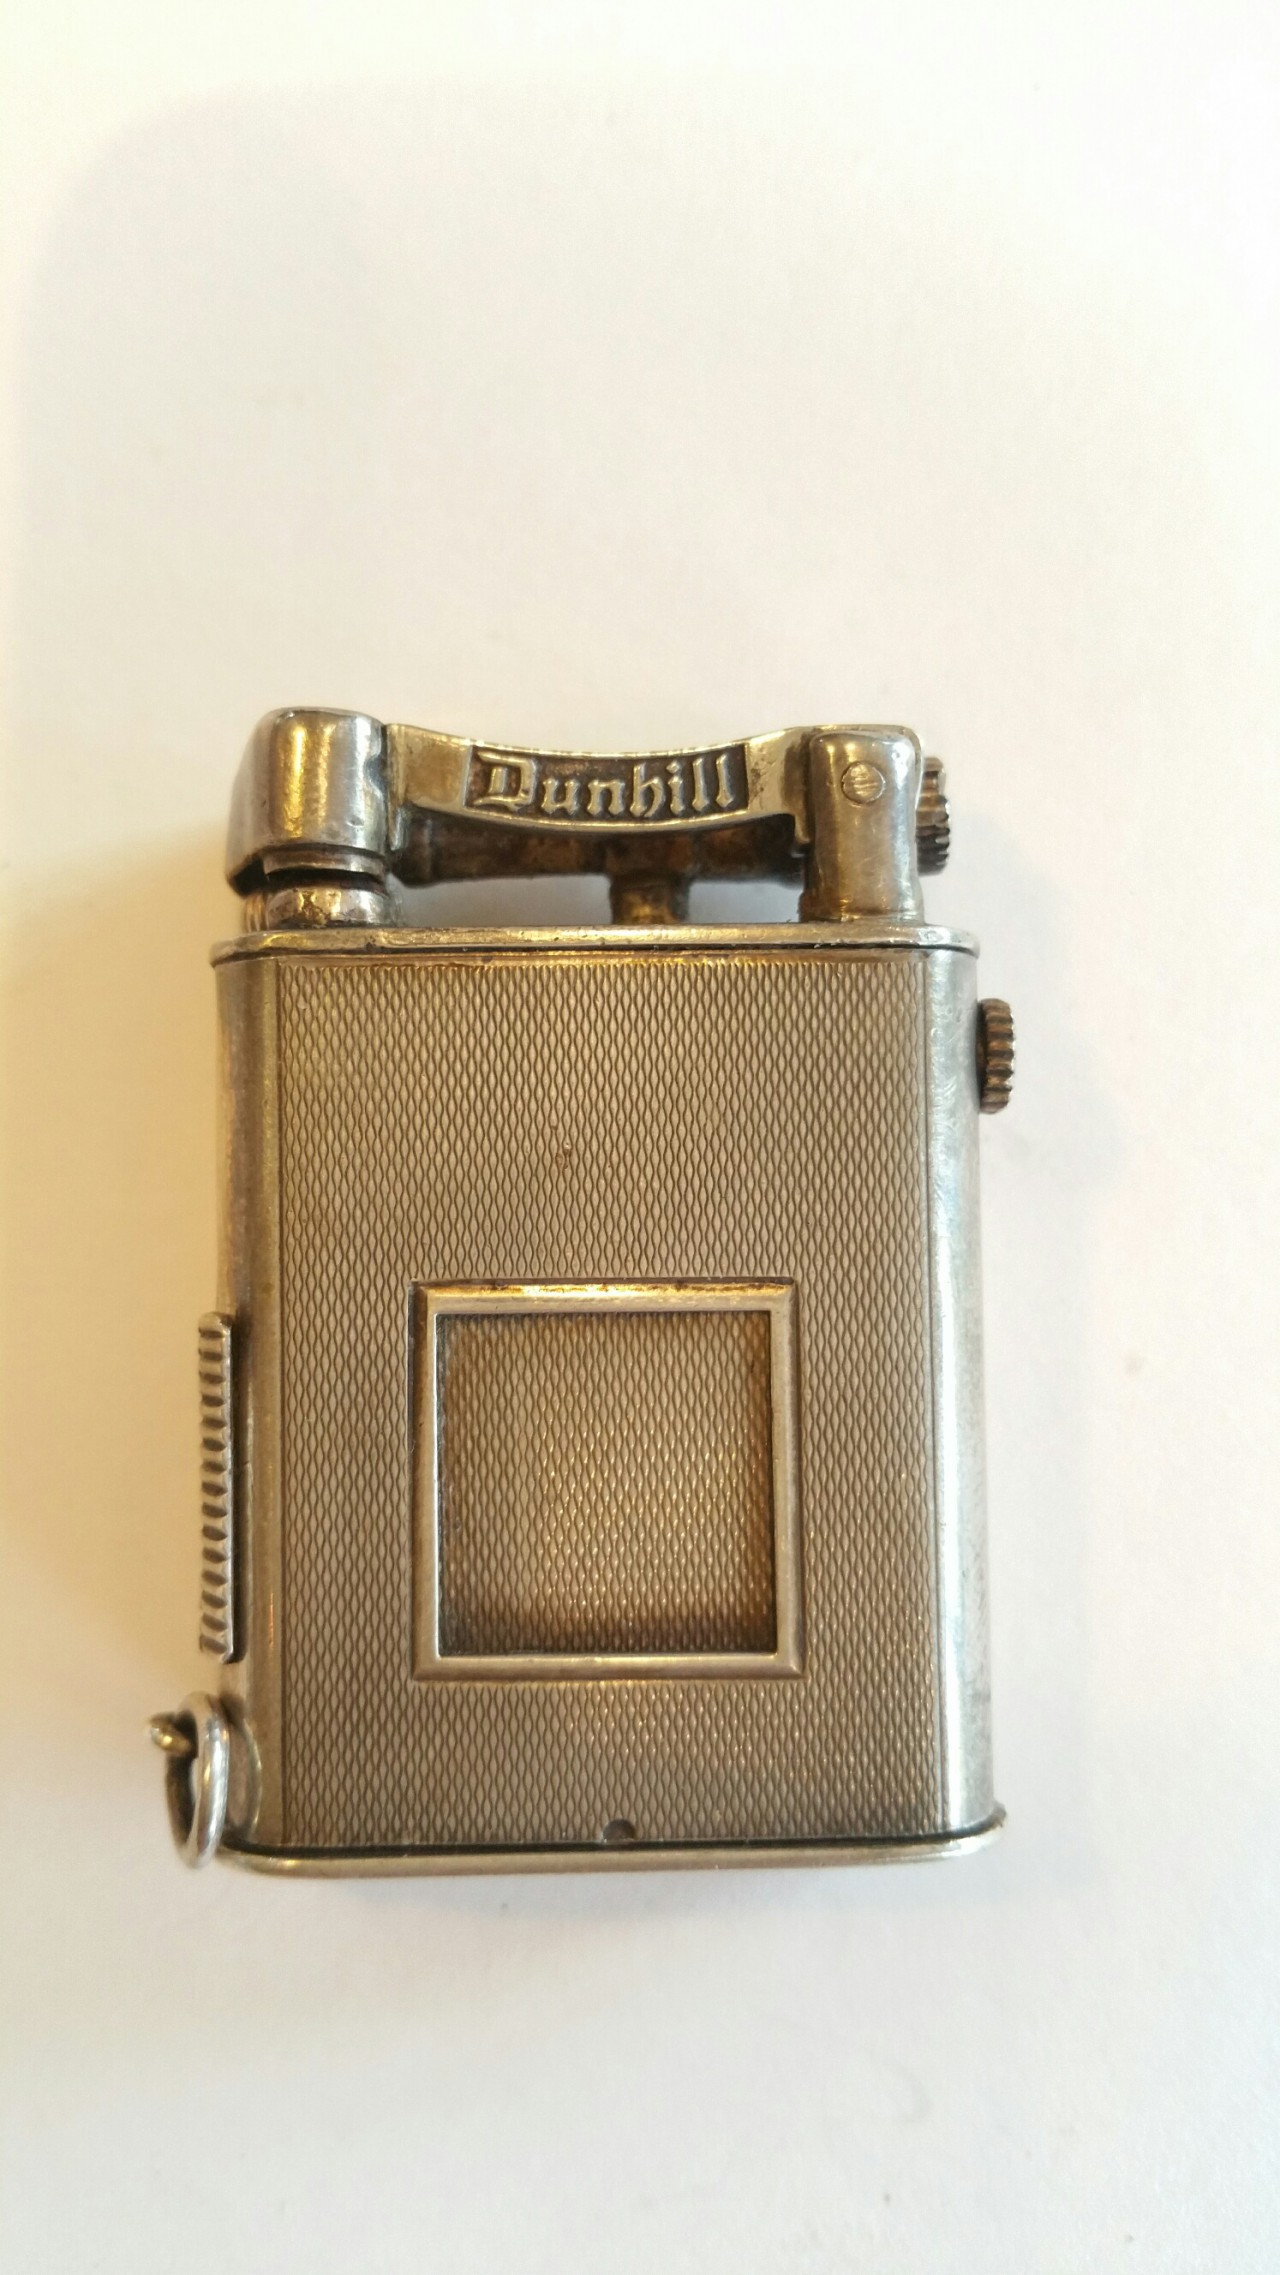 sarastro silver lighter made for dunhill uhrenfeuerzeug petrol benzin